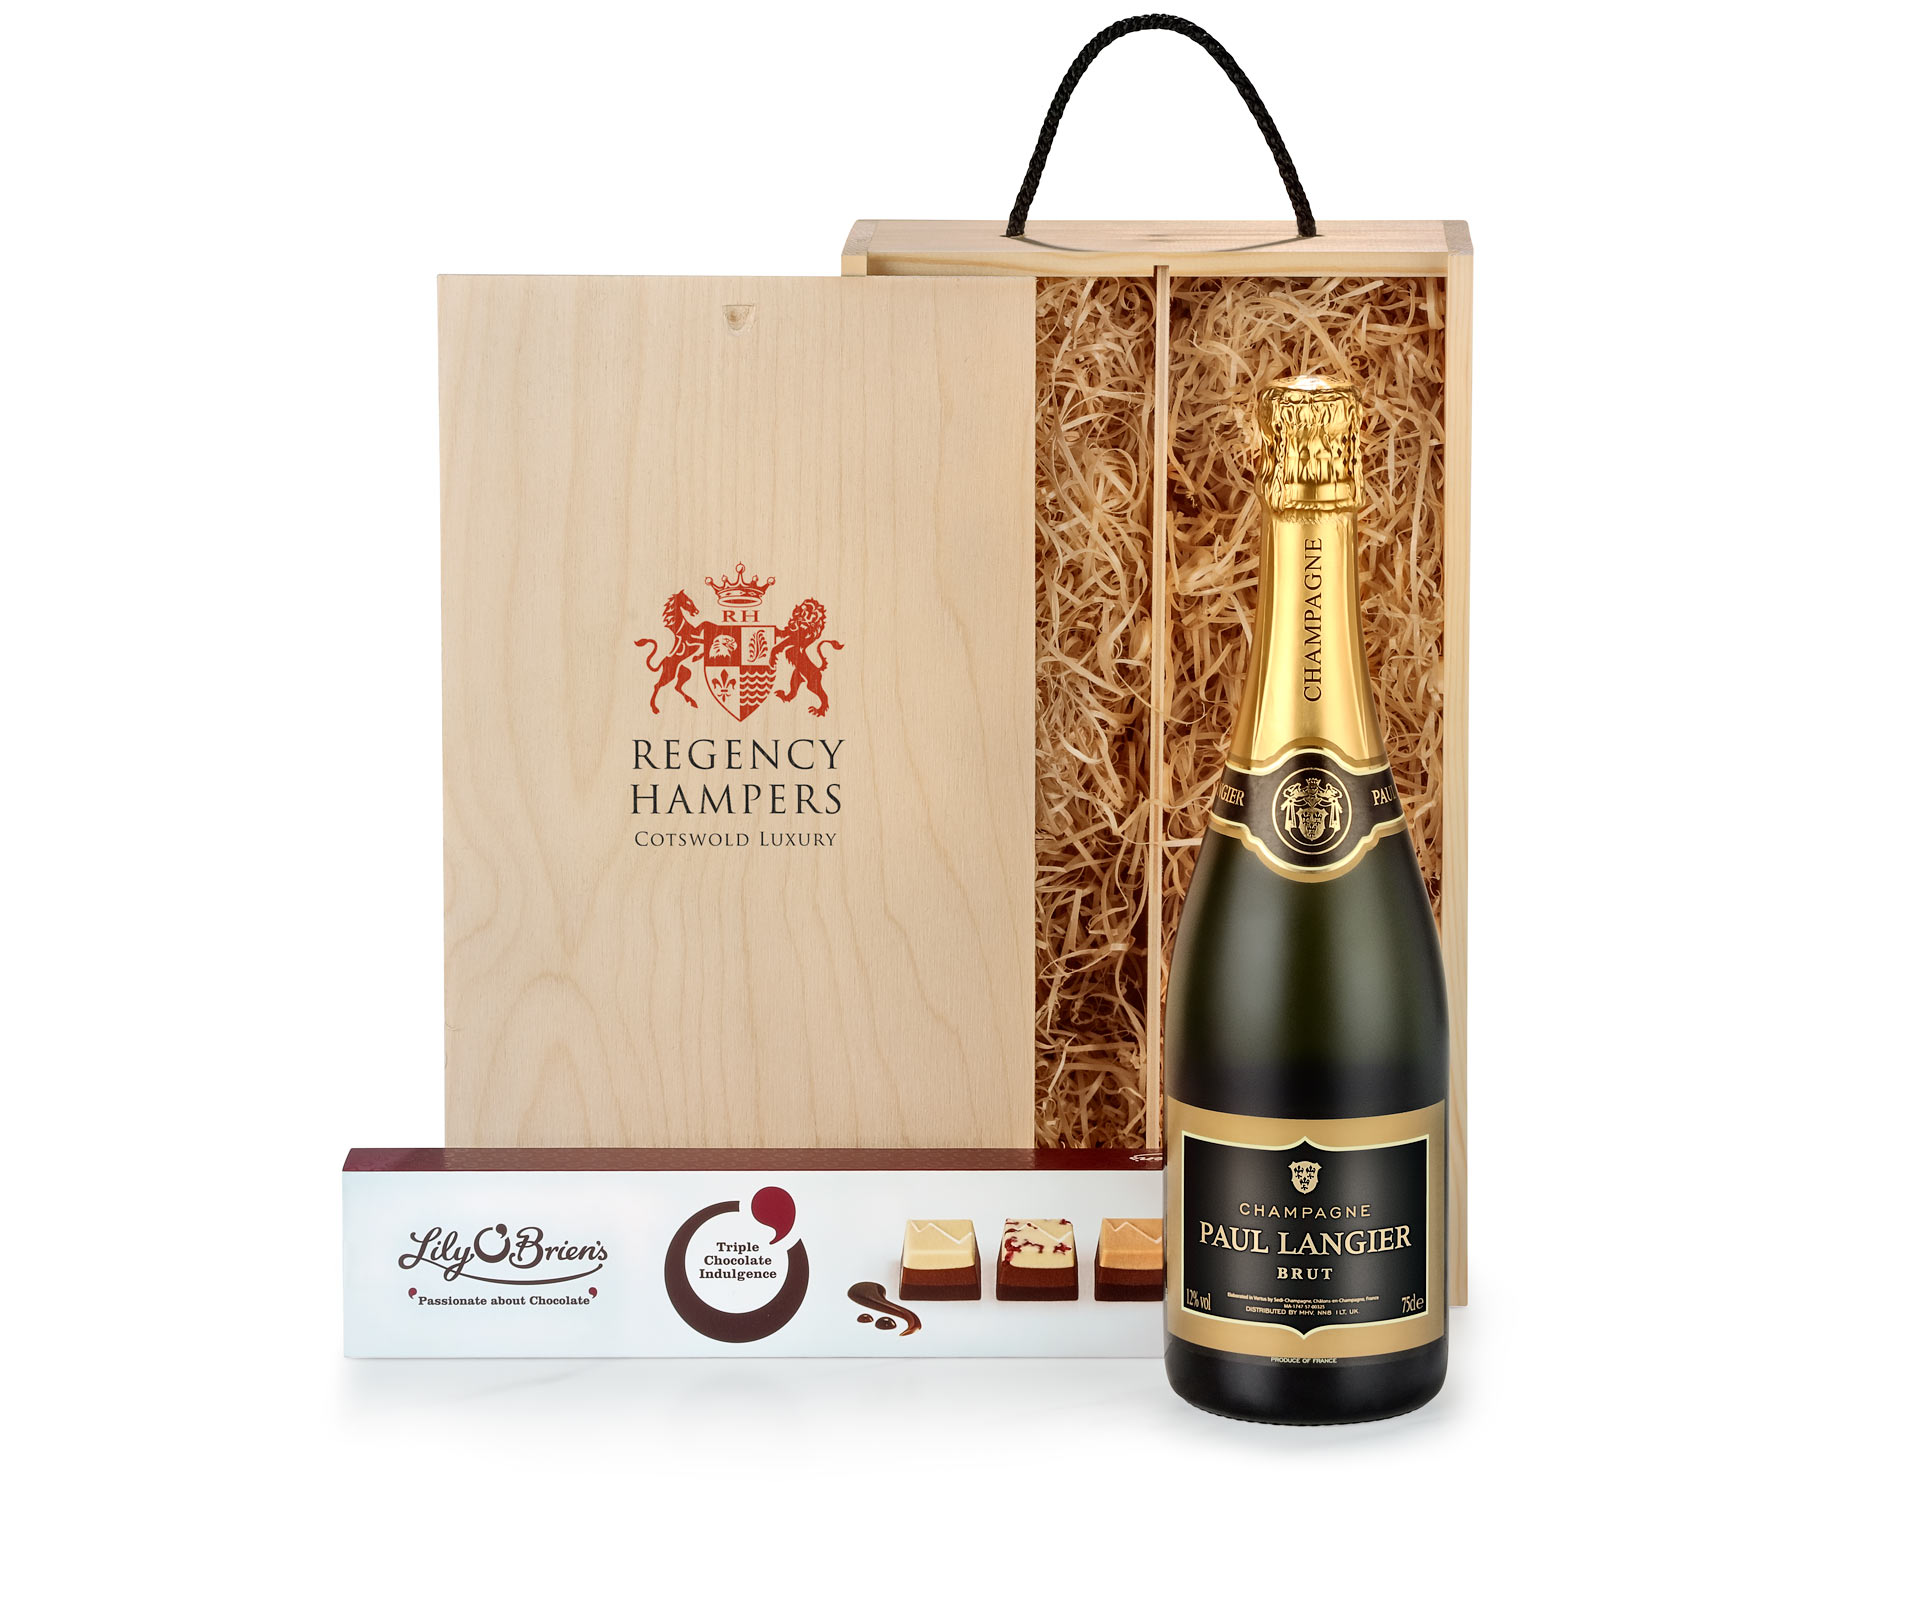 Champagne & Chocolates in Wooden Box